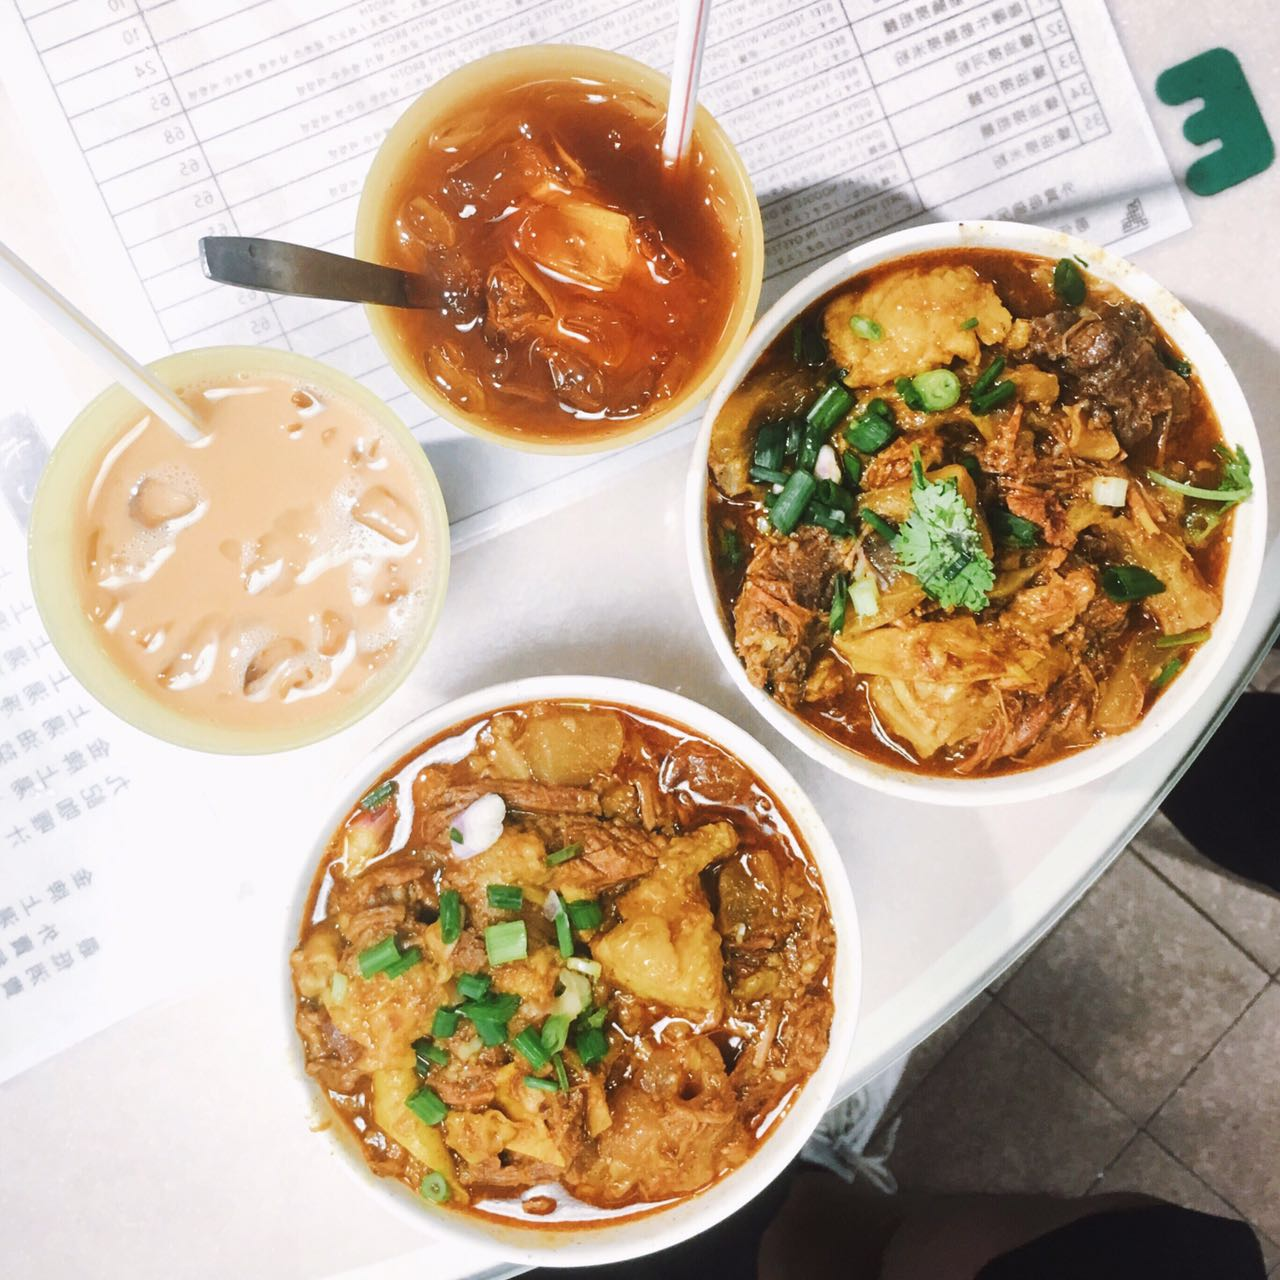 Beef Tendon and Brisket Rice Noodles in Curry Broth | 咖喱牛筋腩河粉 (¥45)